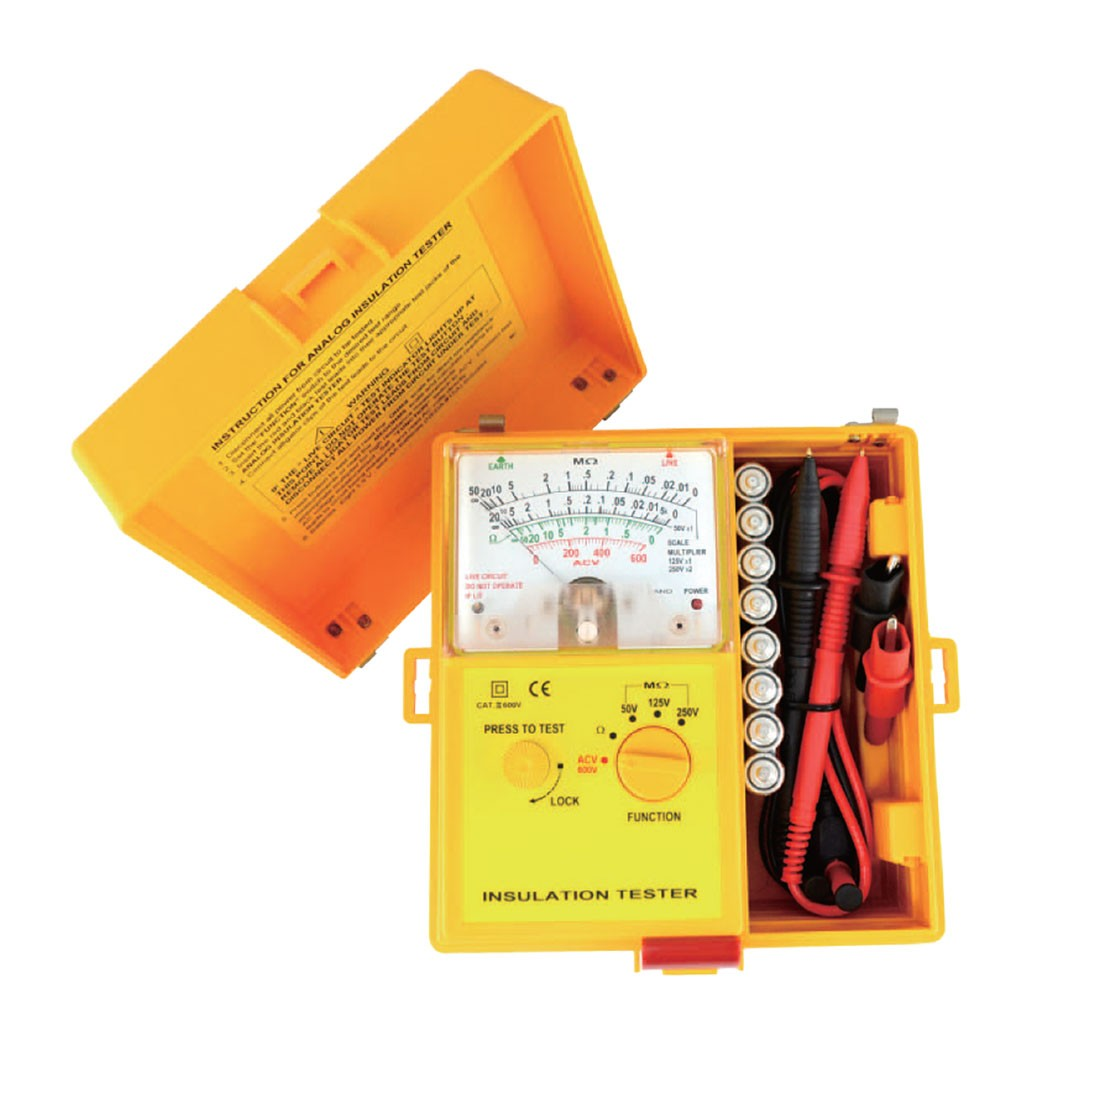 1801 IN Insulation Tester for Telecoms